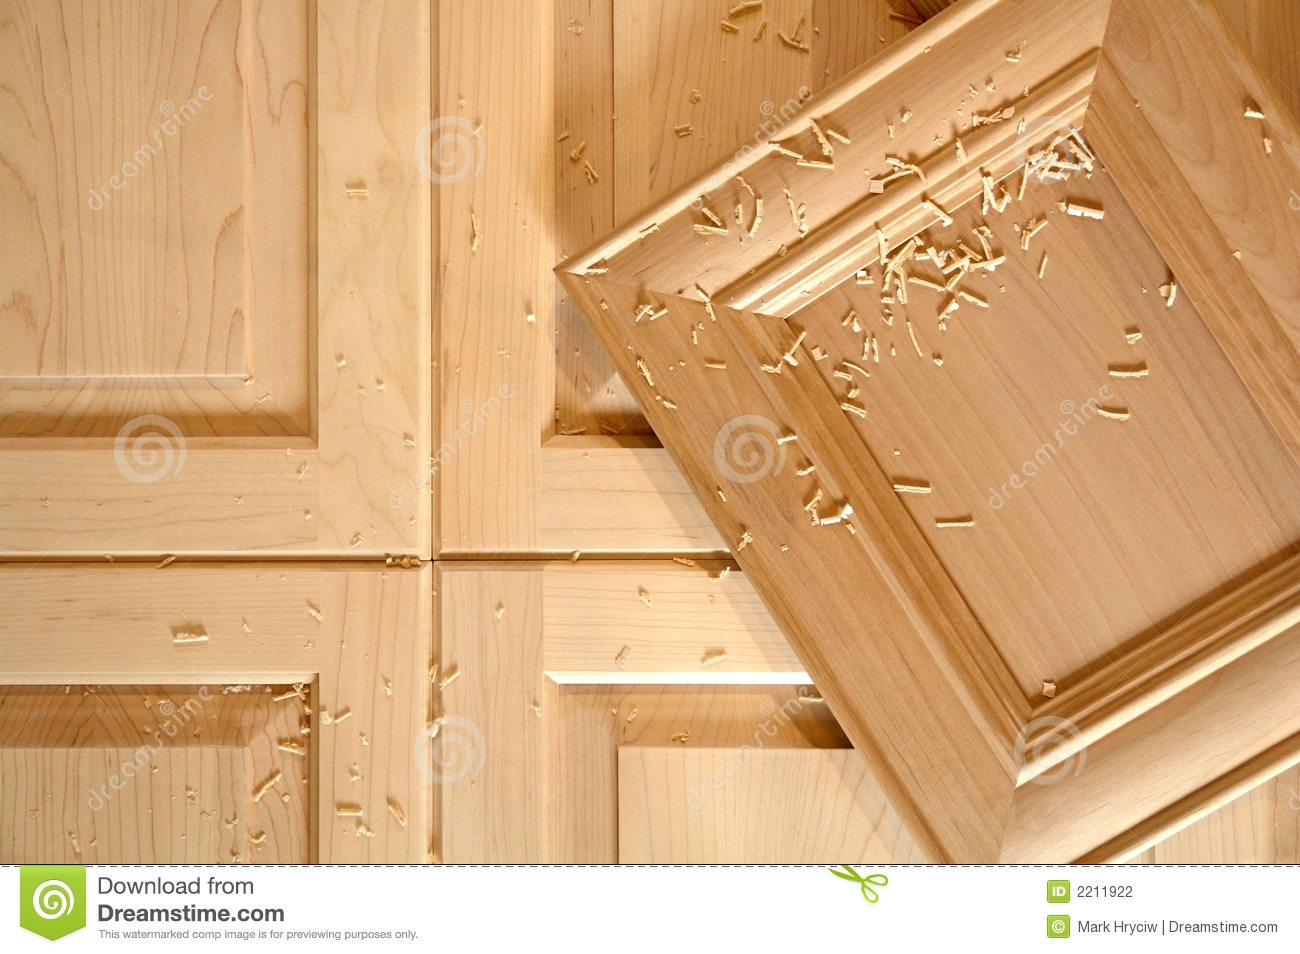 Custom Cabinet Doors Stock Photography - Image: 2211922